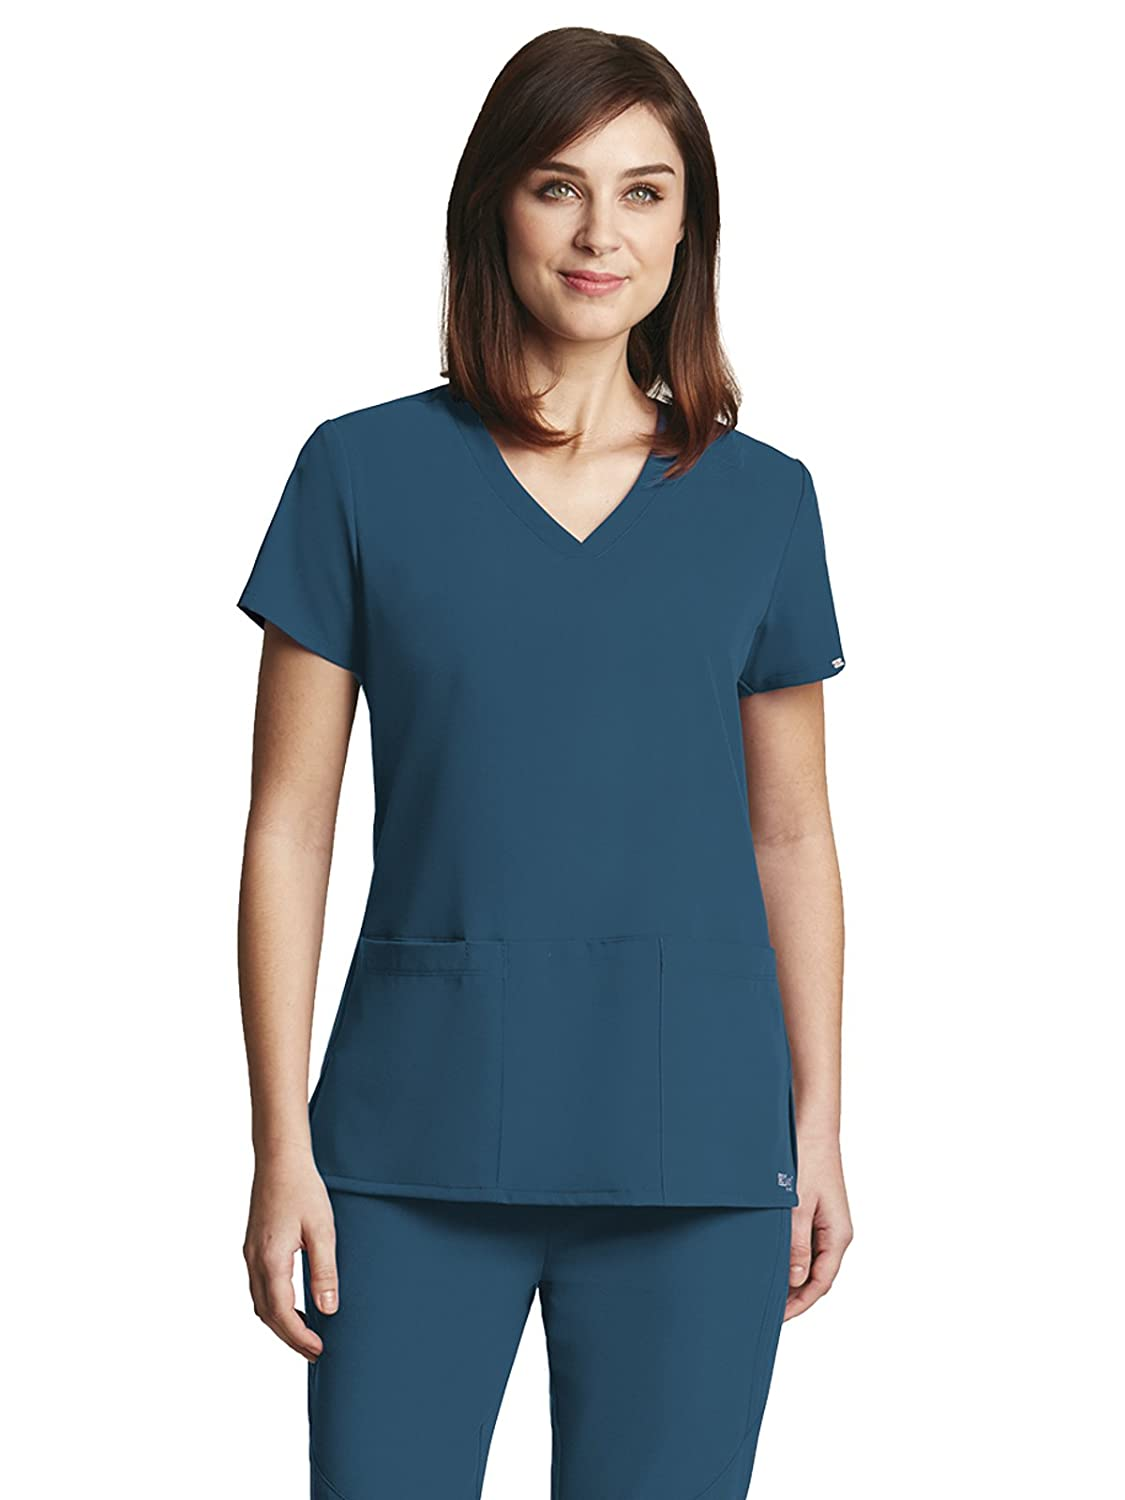 Enchanting Gray Anatomy Uniforms Elaboration - Anatomy and ...